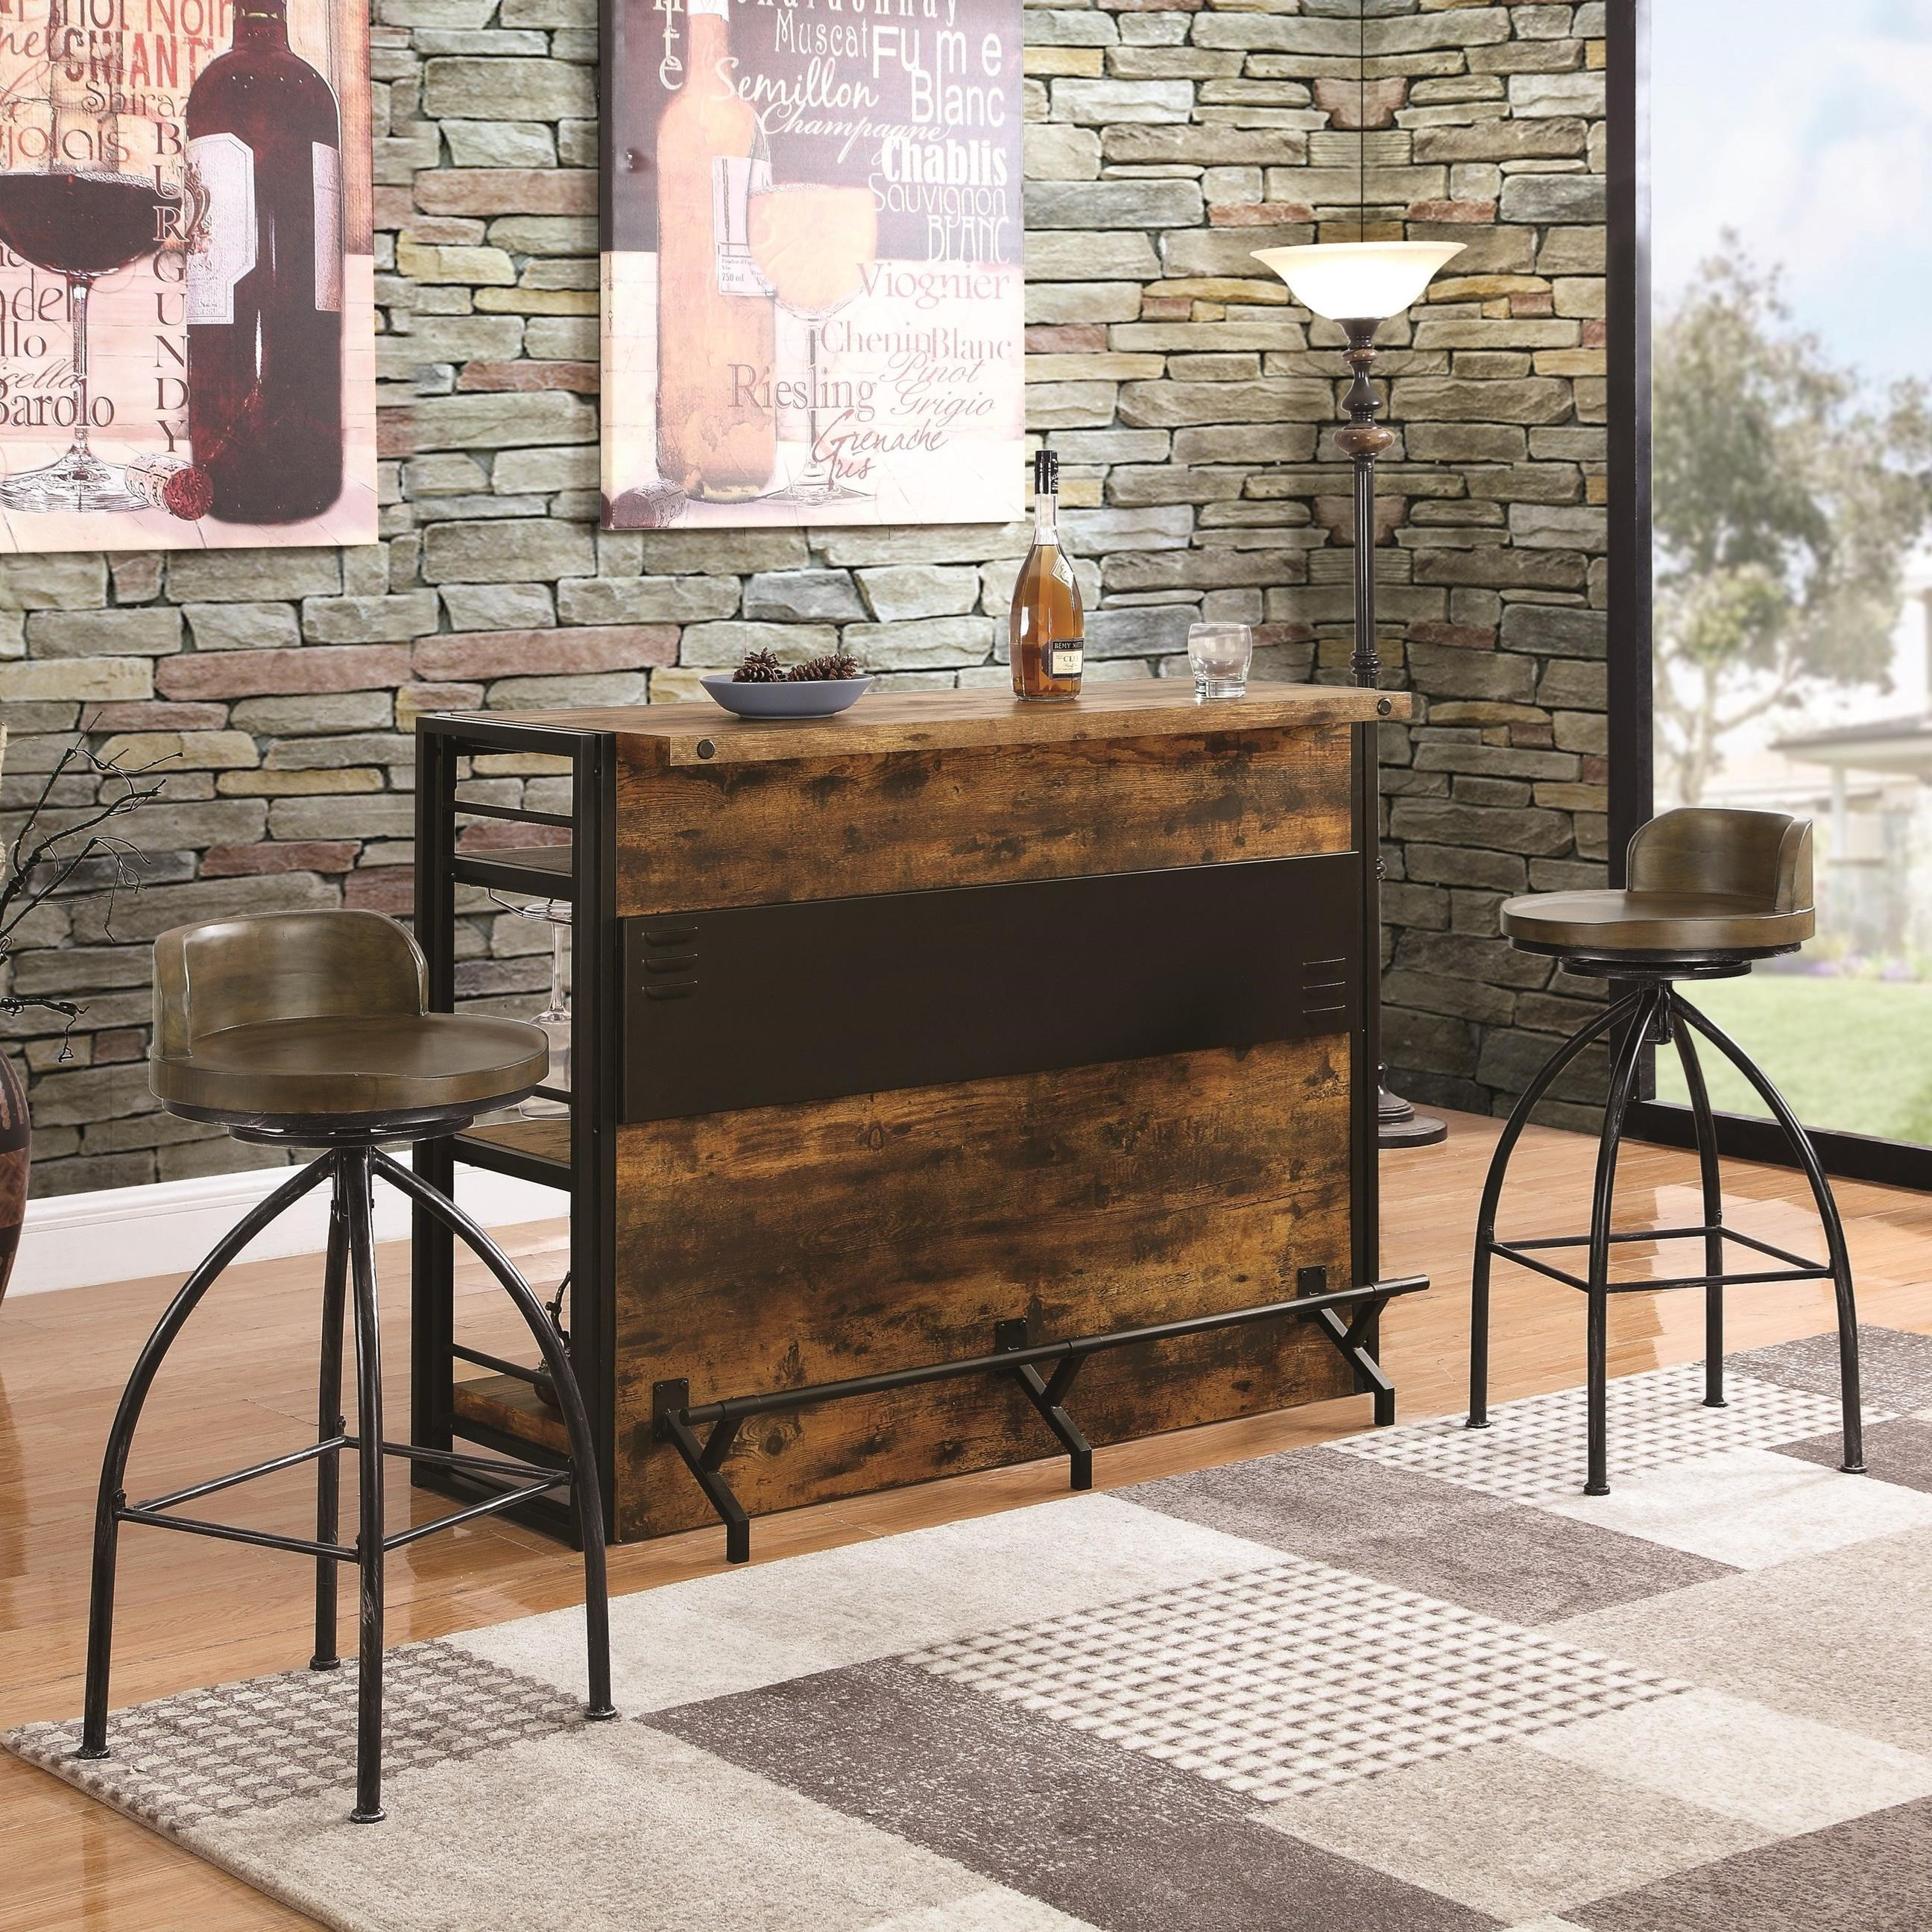 Bar and Stool Set